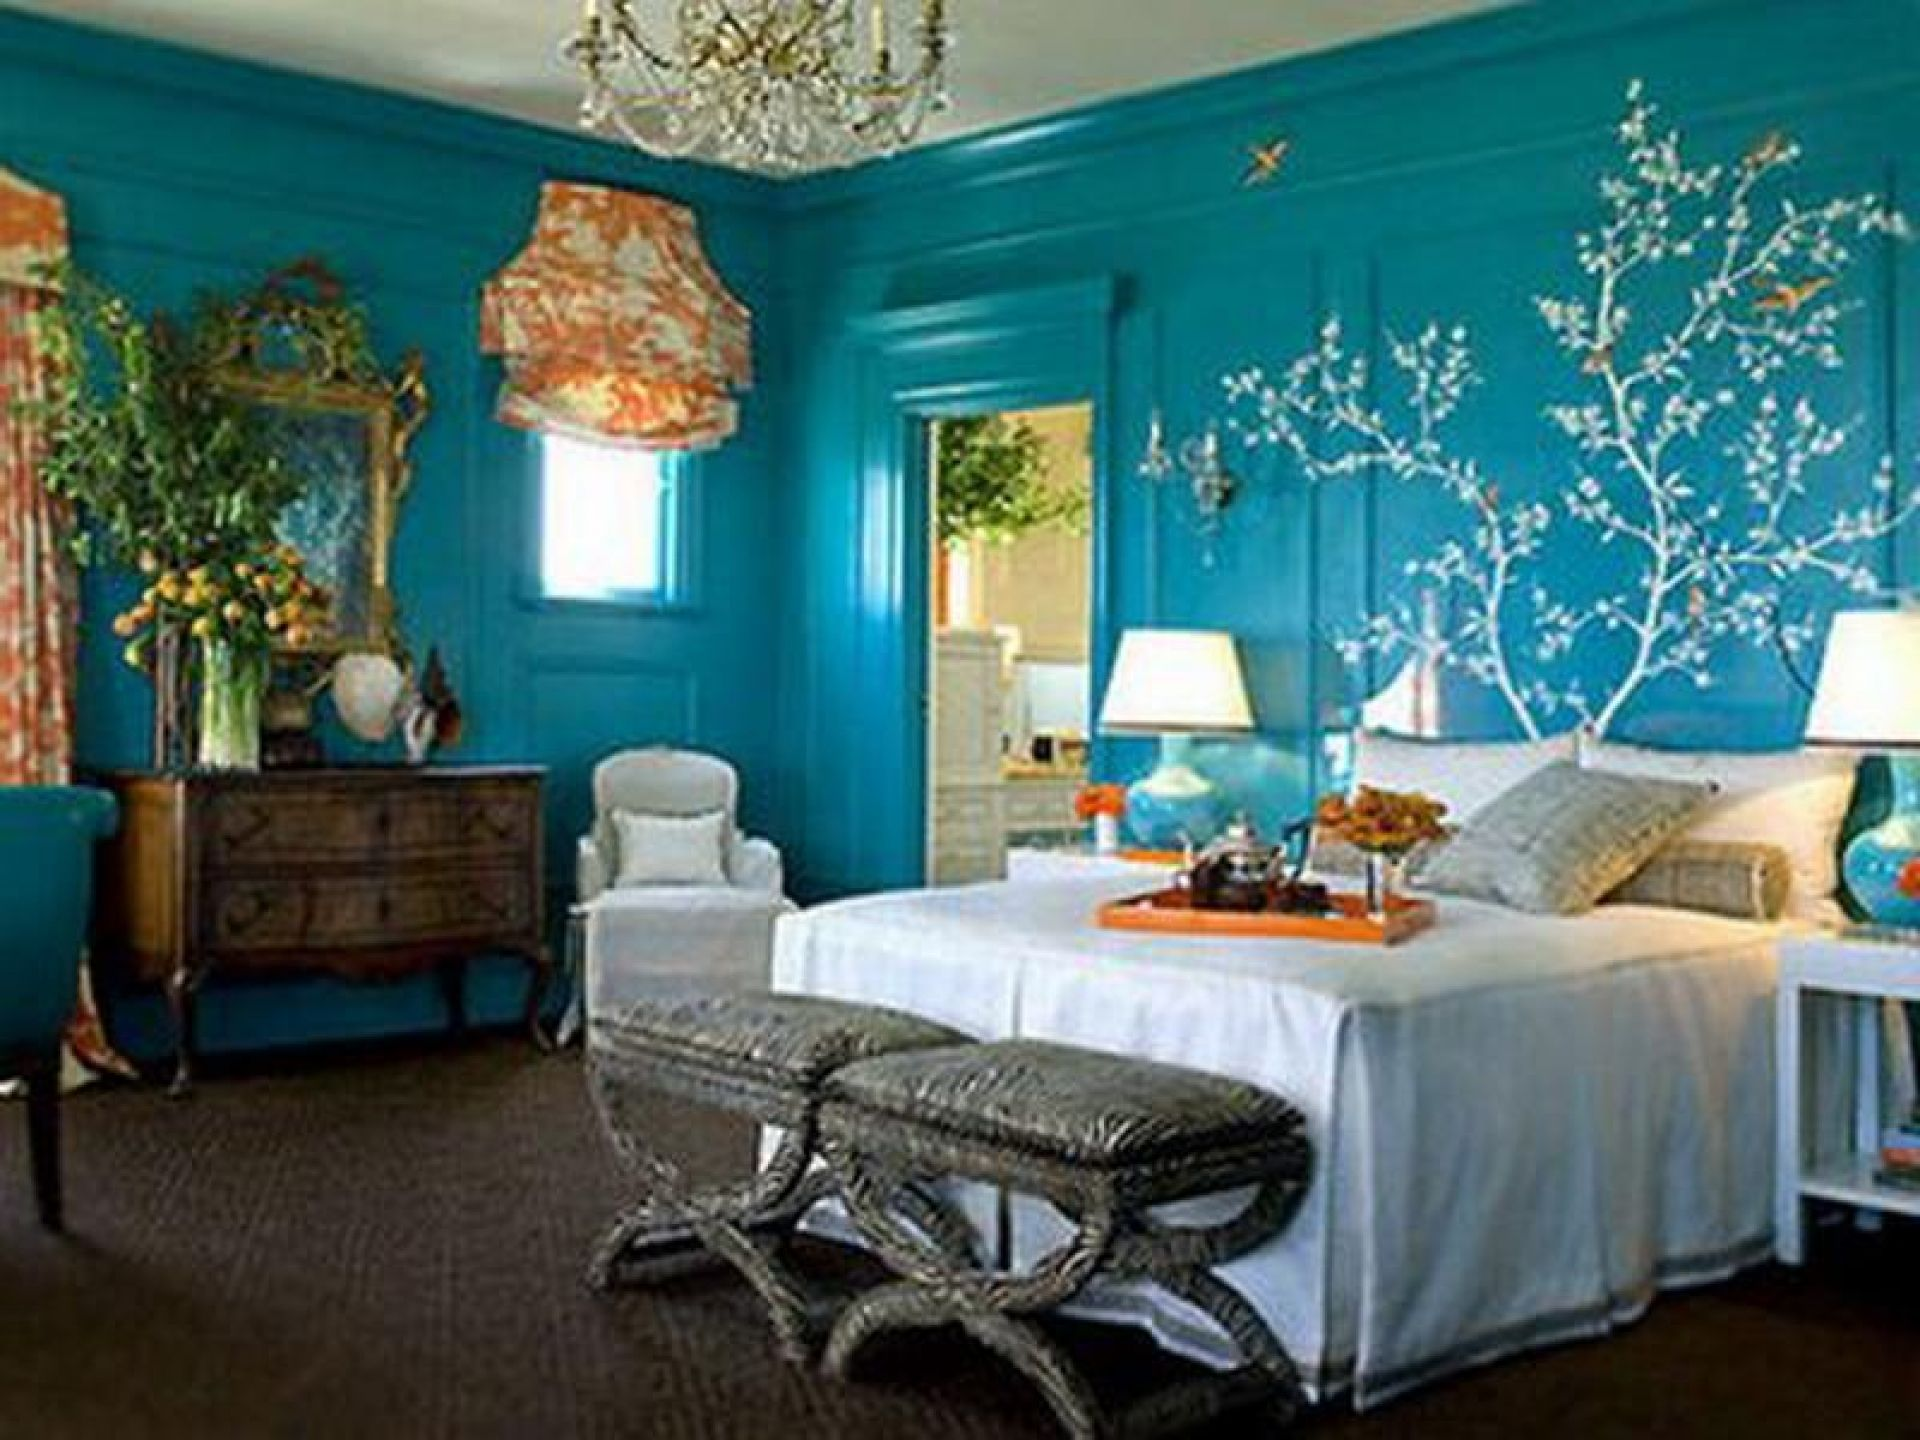 Bedroom Ideas Adults i bedroom theme ideas for young adults bedroom ideas for young